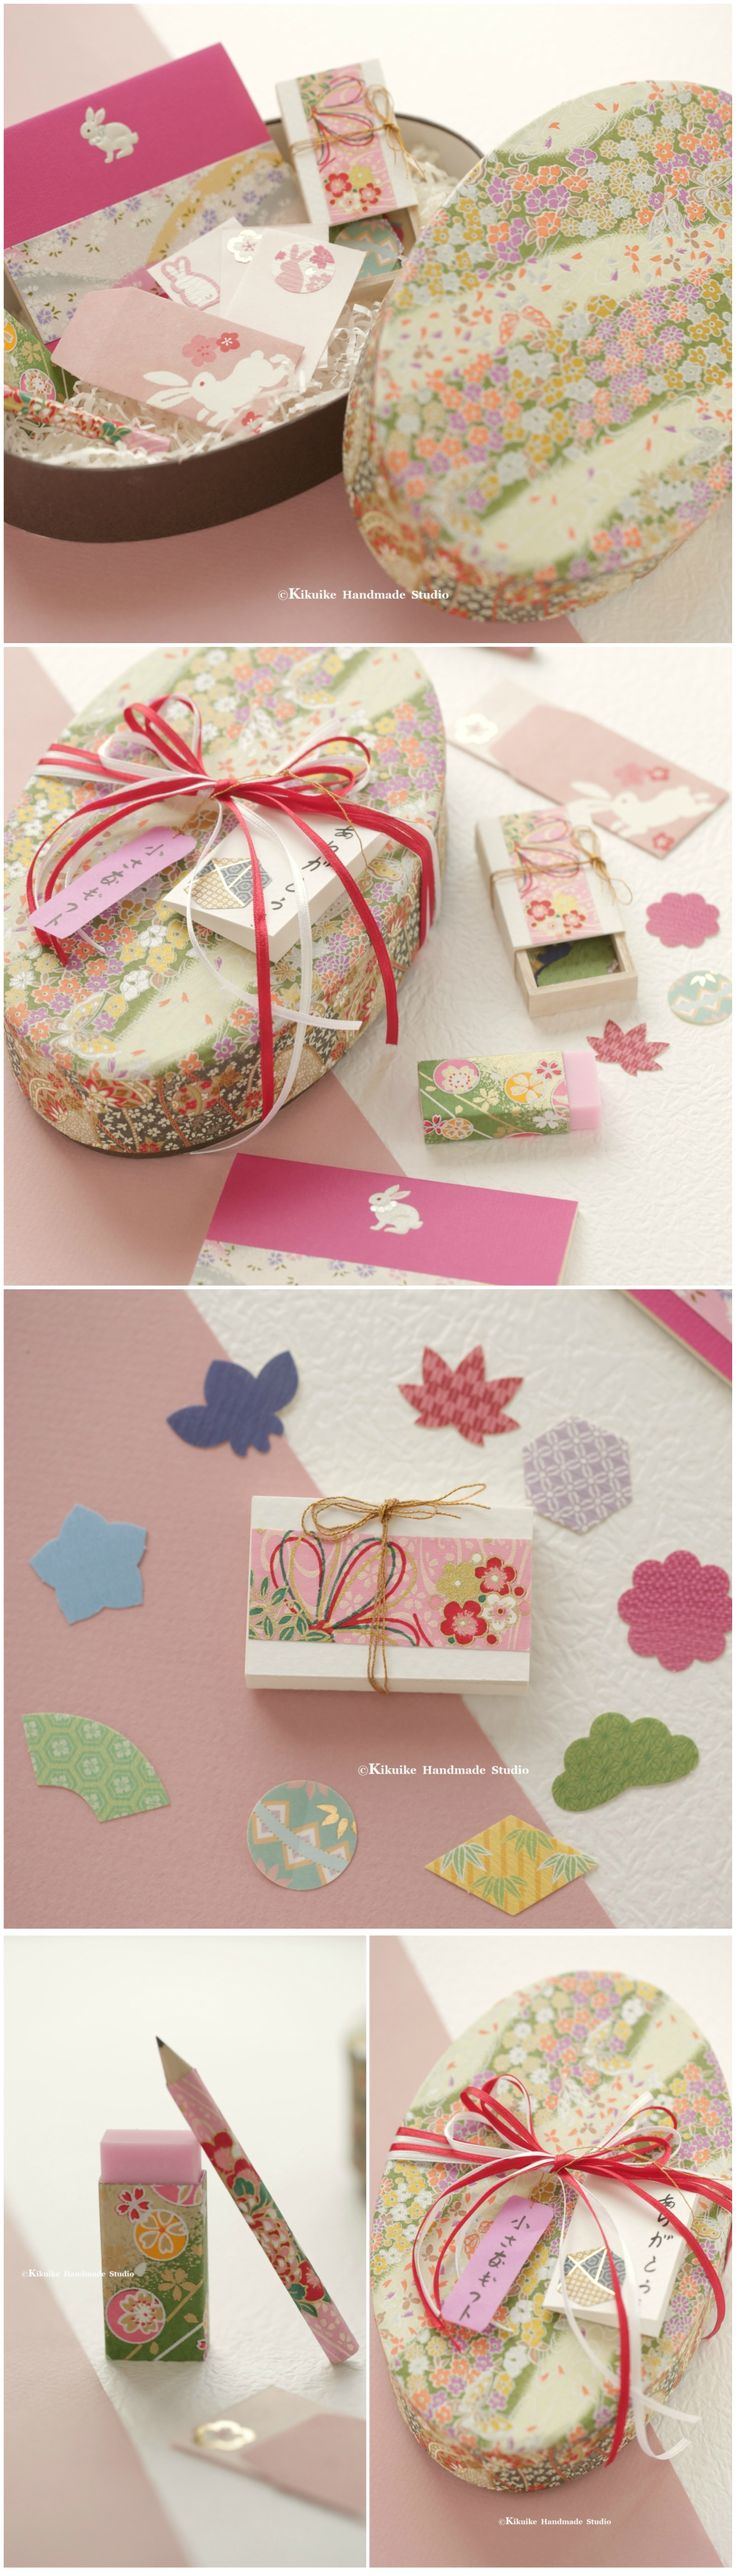 The 25 best japanese girlfriend ideas on pinterest school girl handmade japanese stationary sethand wrapped chiyogami paper gift boxvalentines giftgift for hergirlfriend giftbirthday gift holiday gift negle Images